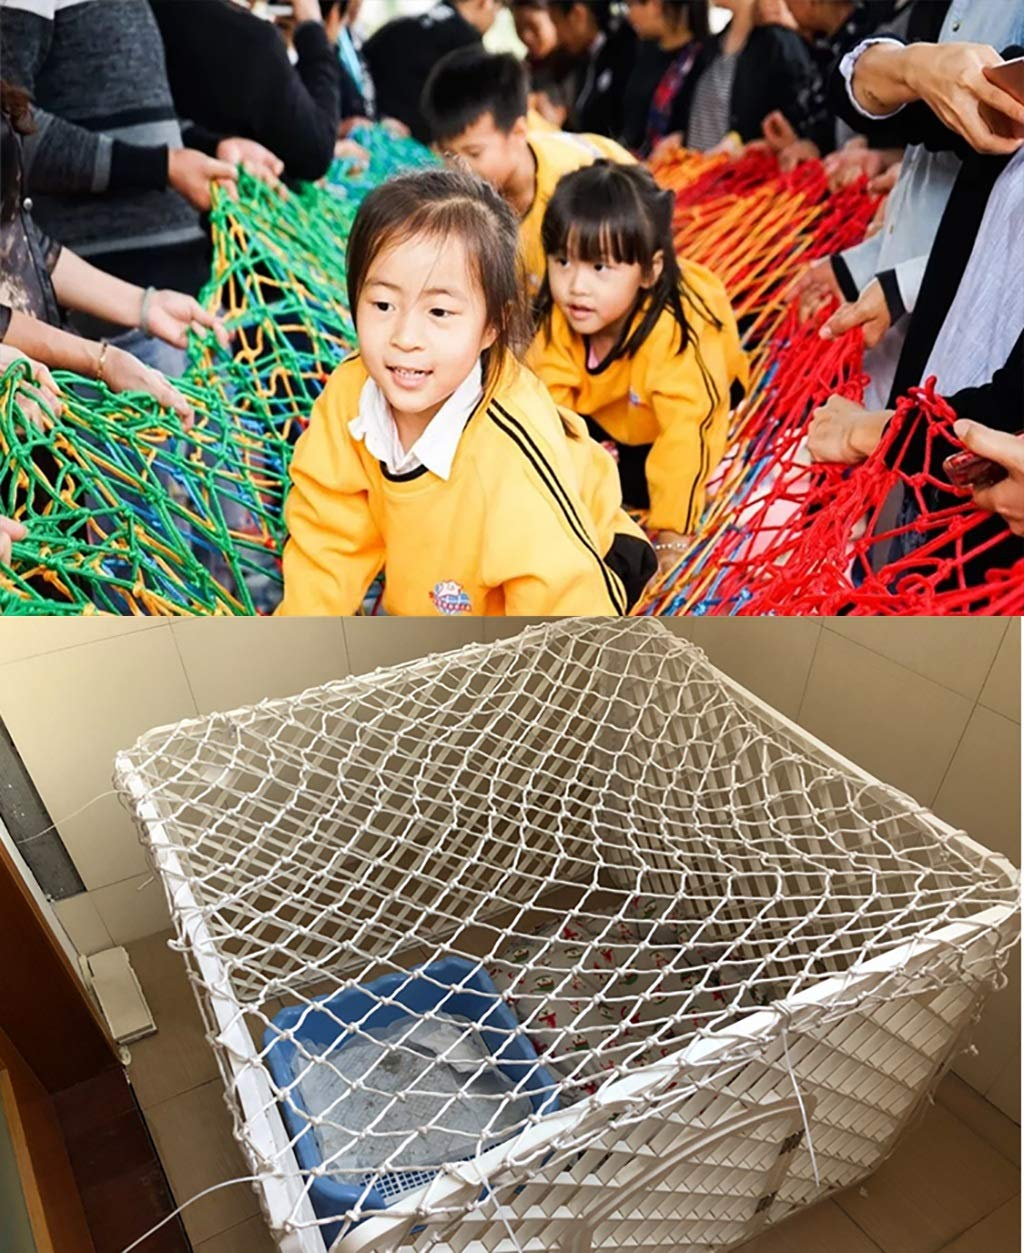 Child safety net protective net balcony stairs anti-fall net kindergarten color decorative net fence network Length 1M /9M Hand braided traditional structure (Size : 4m*5m)  [Protect children's safety]: Many children fall from the building, let us understand that the safety of children can not be ignored. [Polyester knotless woven mesh]: The mesh surface has large pulling force, and the double needle has no knot woven mesh hole, so that the mesh has stronger impact resistance. [wire diameter 4MM, mesh spacing 4CM]: Escort for baby safety.(Others available in our shop) 6